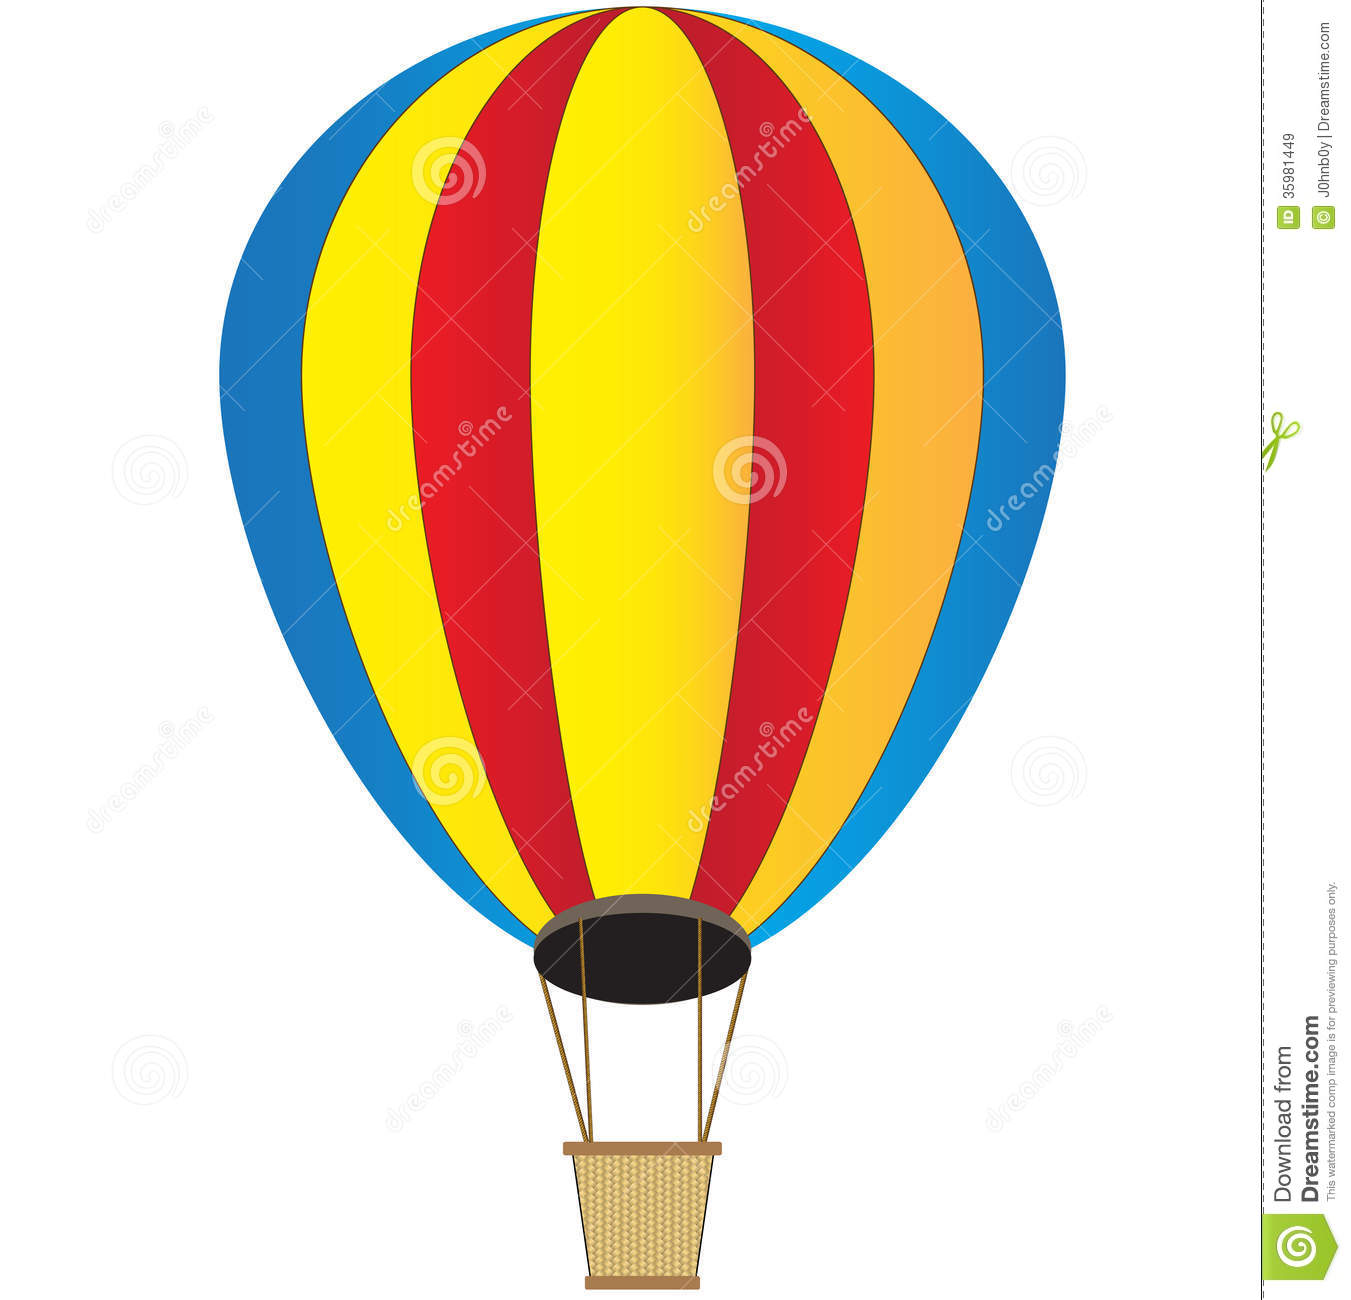 Basket clipart hot air balloon. Drawing at getdrawings com